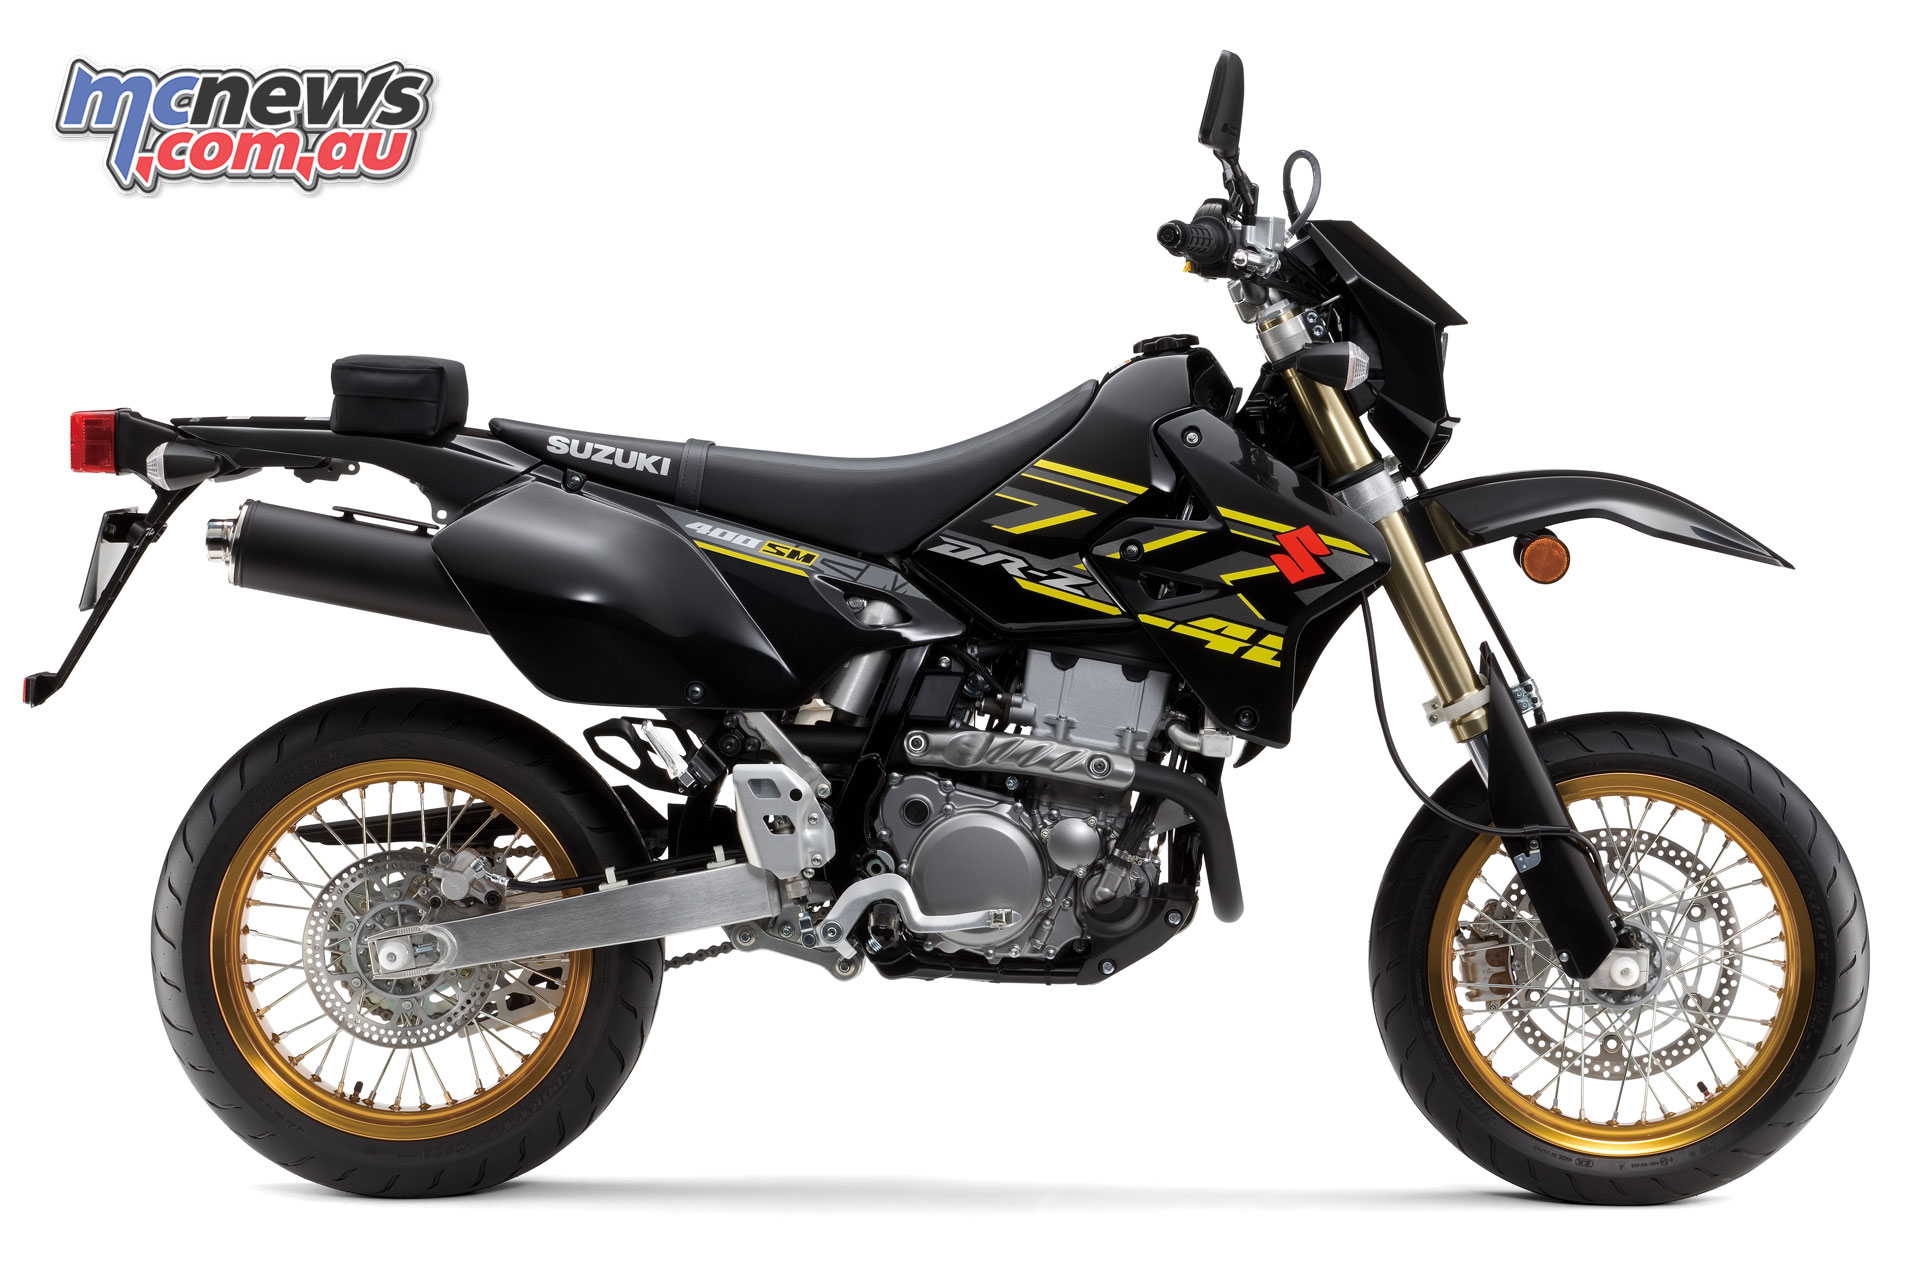 The 2018 Suzuki DR-Z400SM in Solid Black